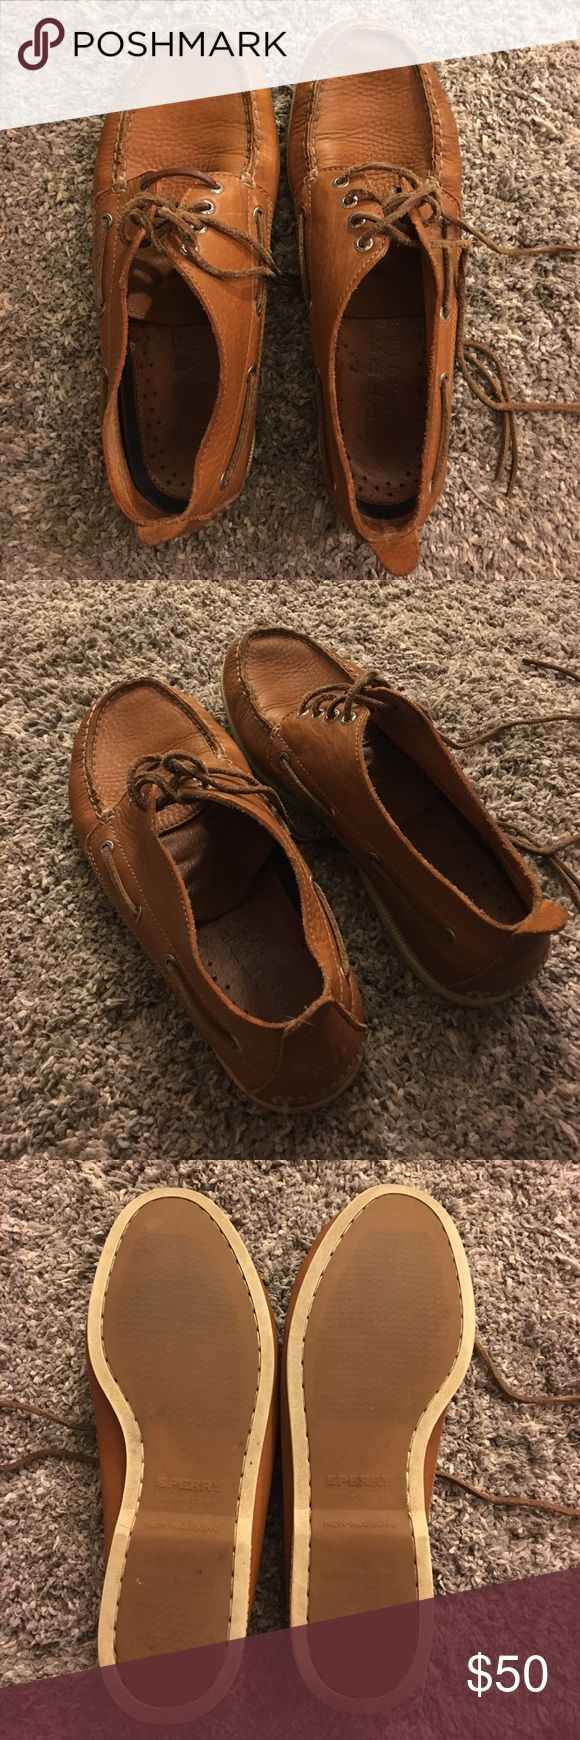 Men's Sperry Topsider Chukka Boots In great shape! Brown leather Chukka shoes! Sperry Top-Sider Shoes Chukka Boots